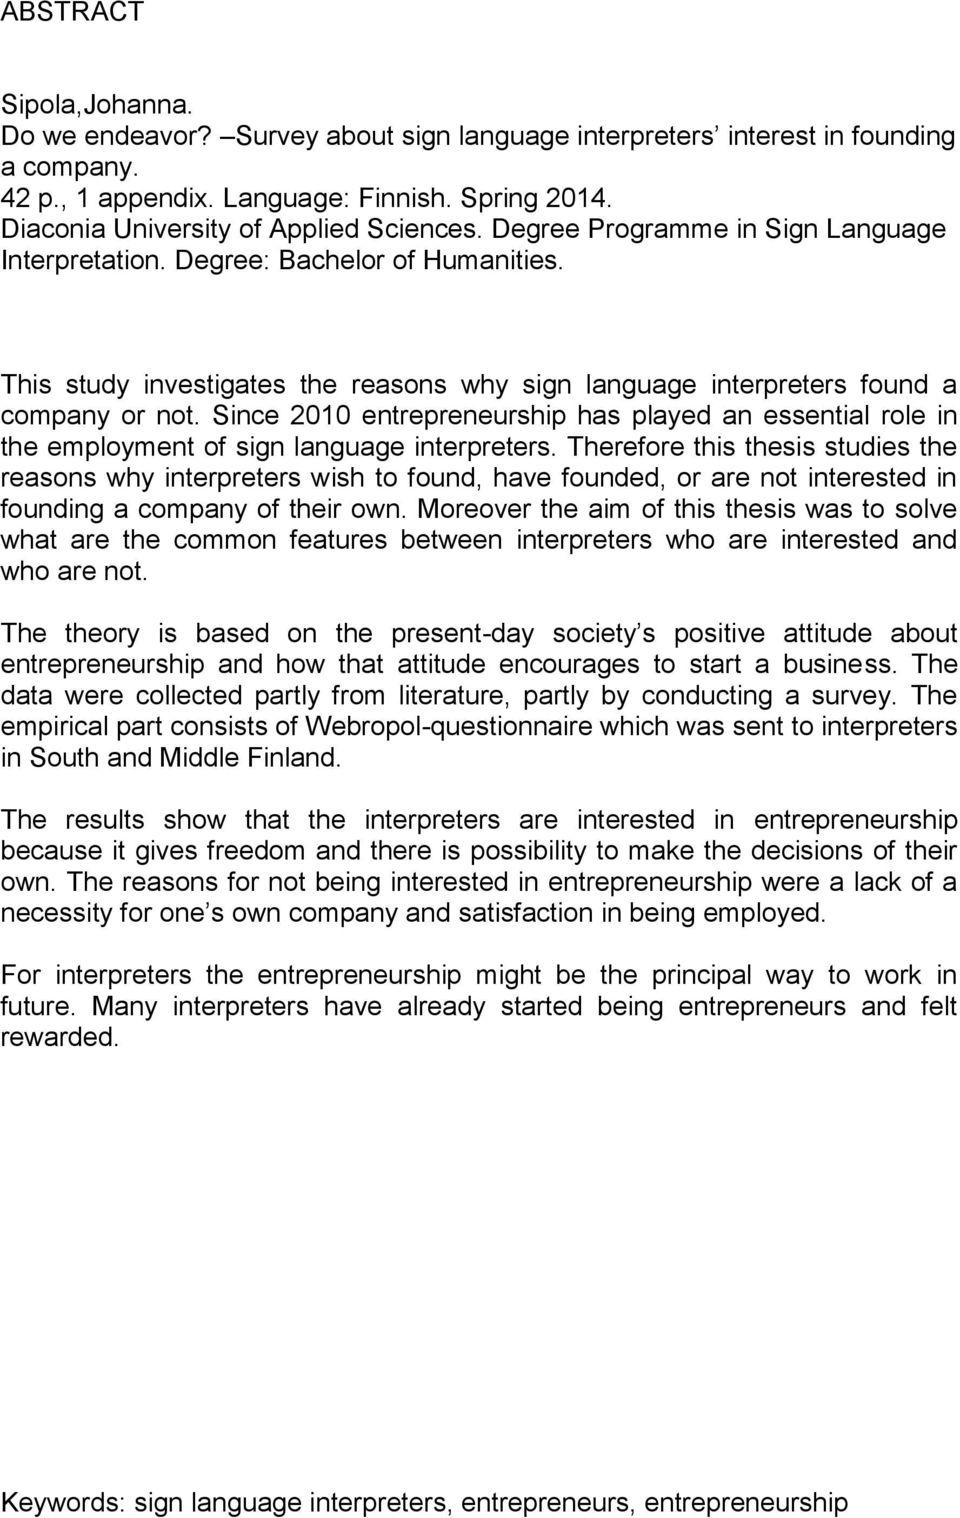 This study investigates the reasons why sign language interpreters found a company or not. Since 2010 entrepreneurship has played an essential role in the employment of sign language interpreters.